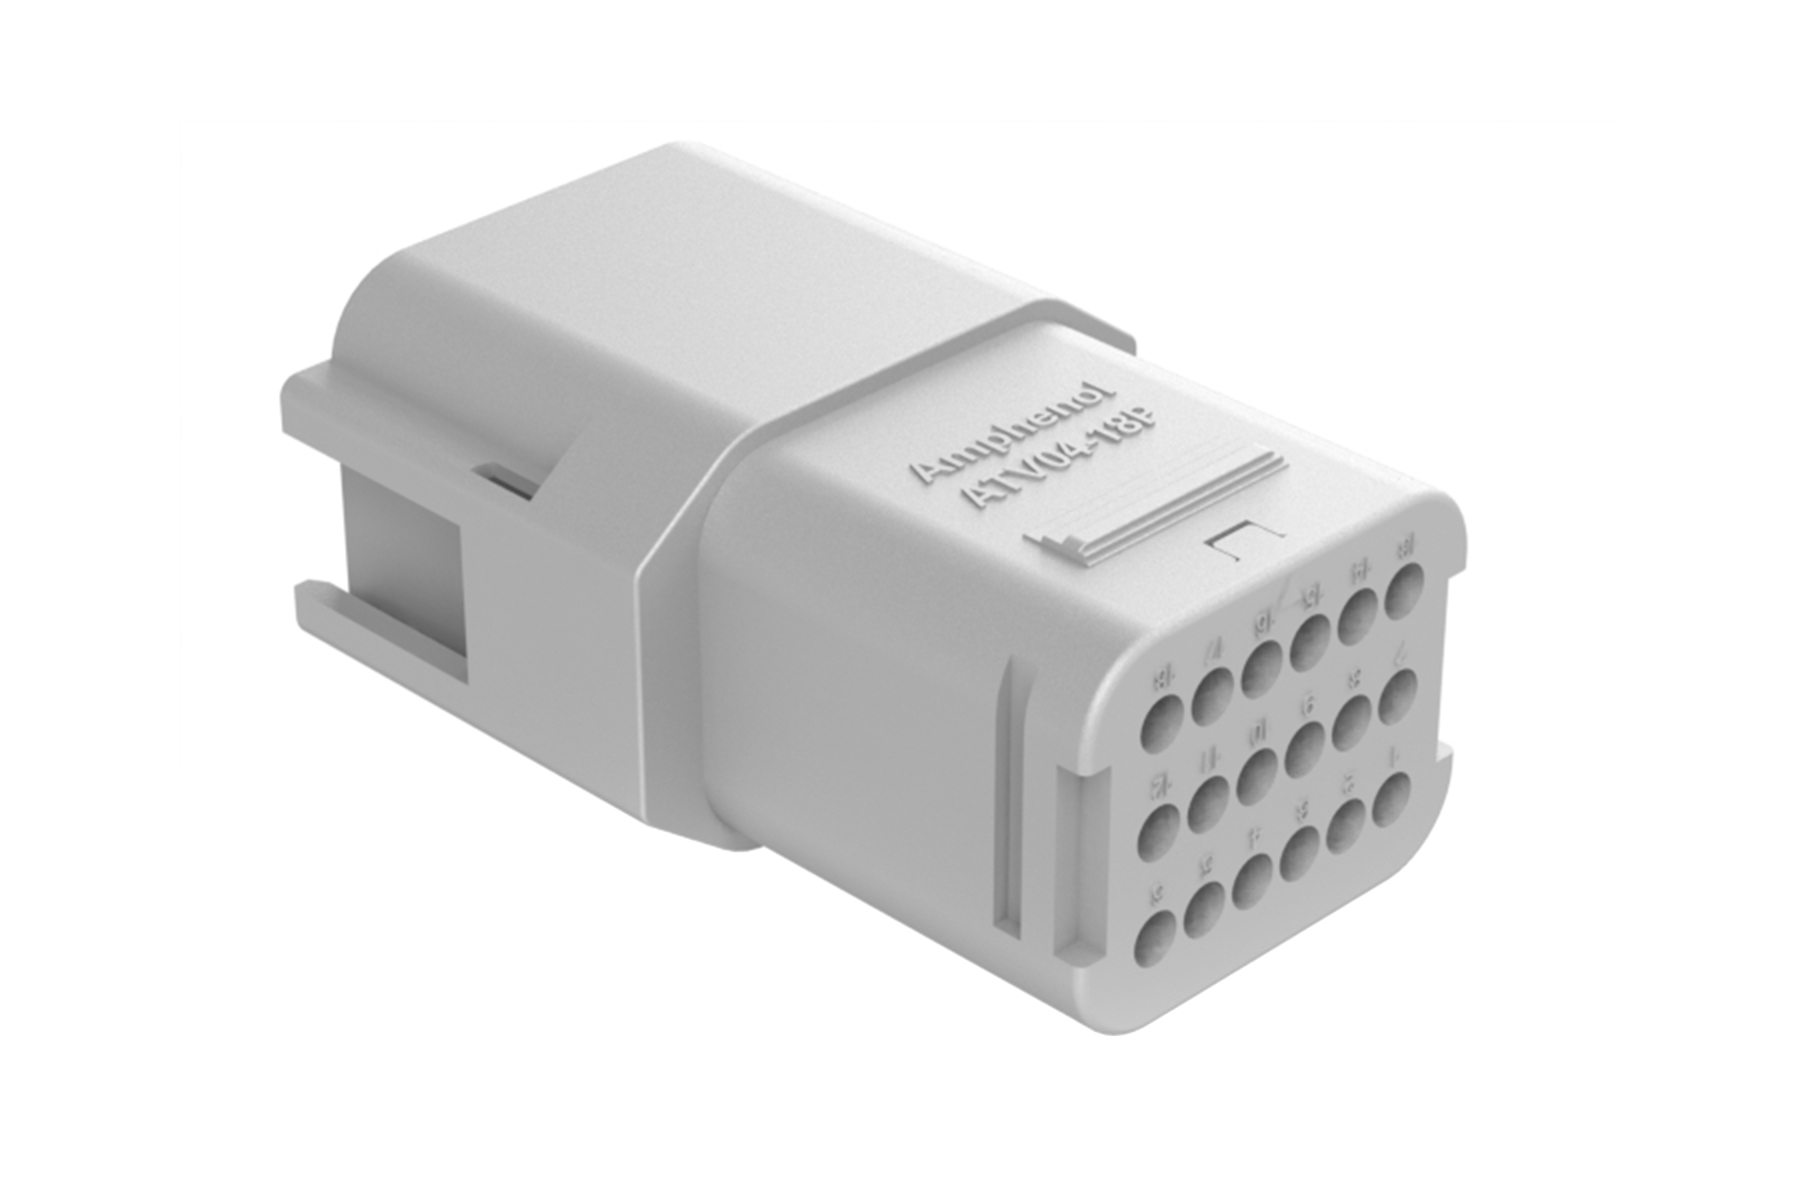 ATV04-18PA 18 position in-line receptacle, Size 16 contact